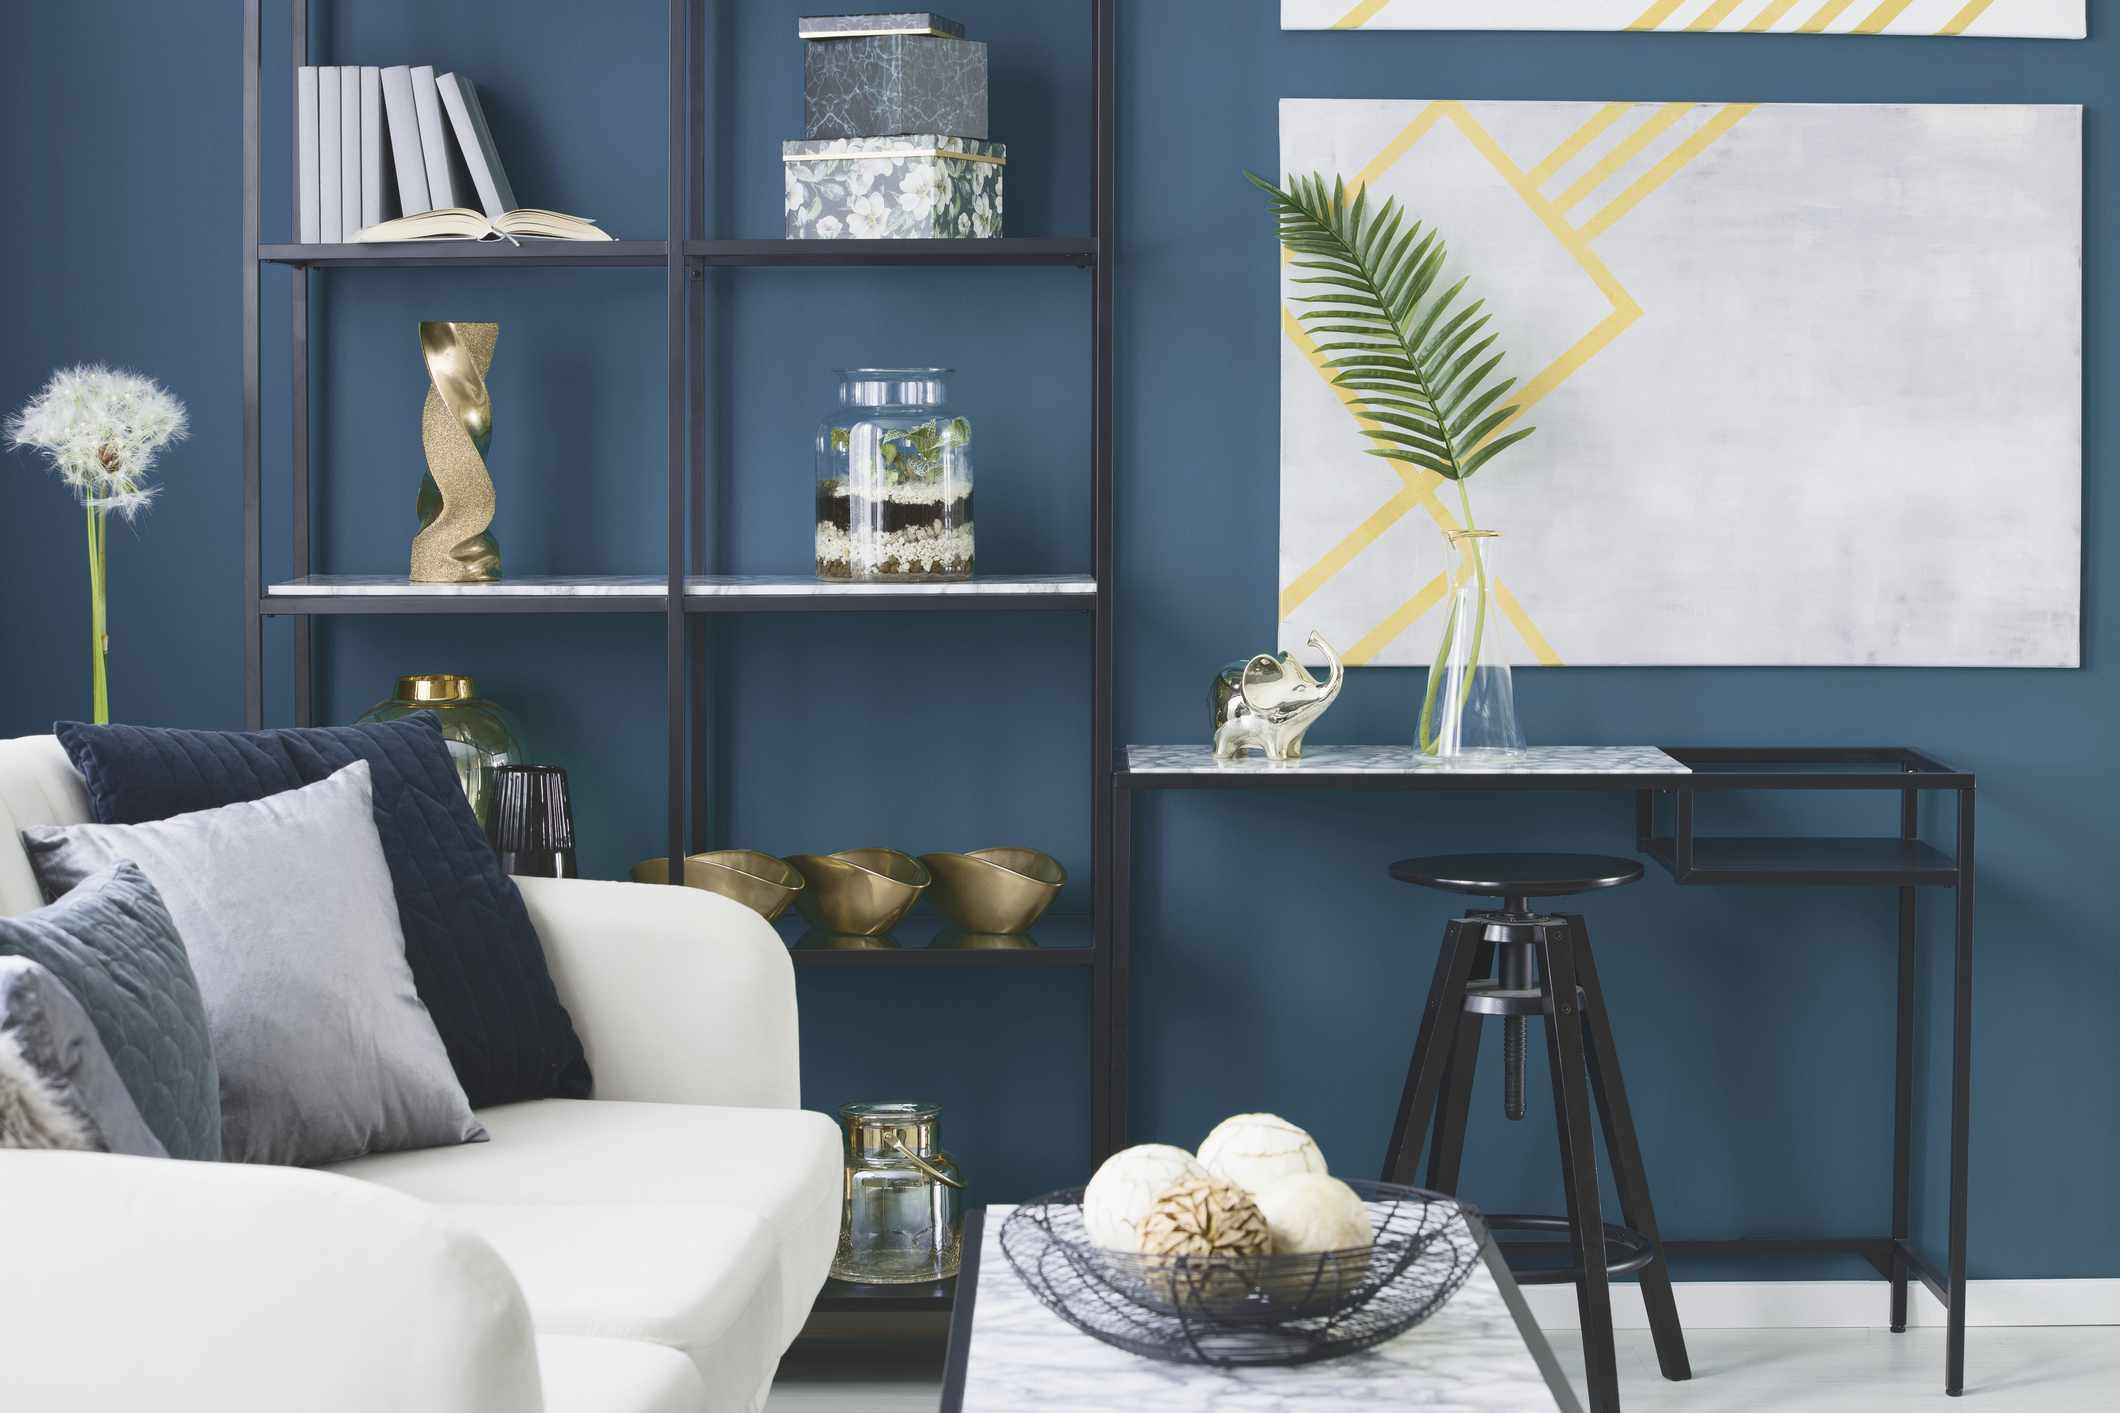 Elephant and leaf in vase interior with blue wall